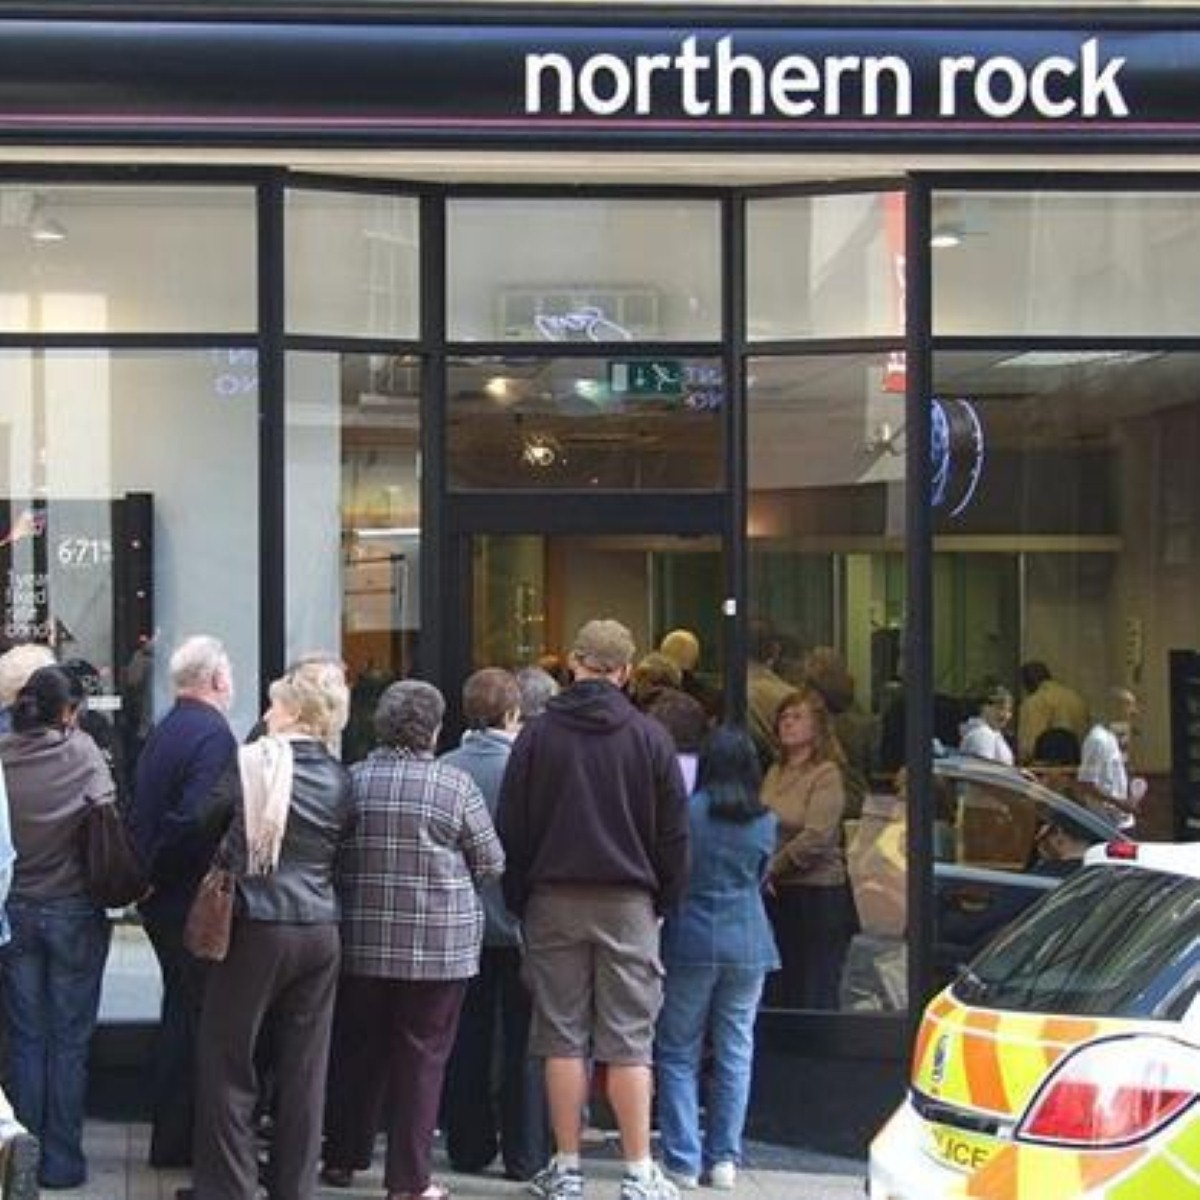 The news of Northern Rock's problems caused panic